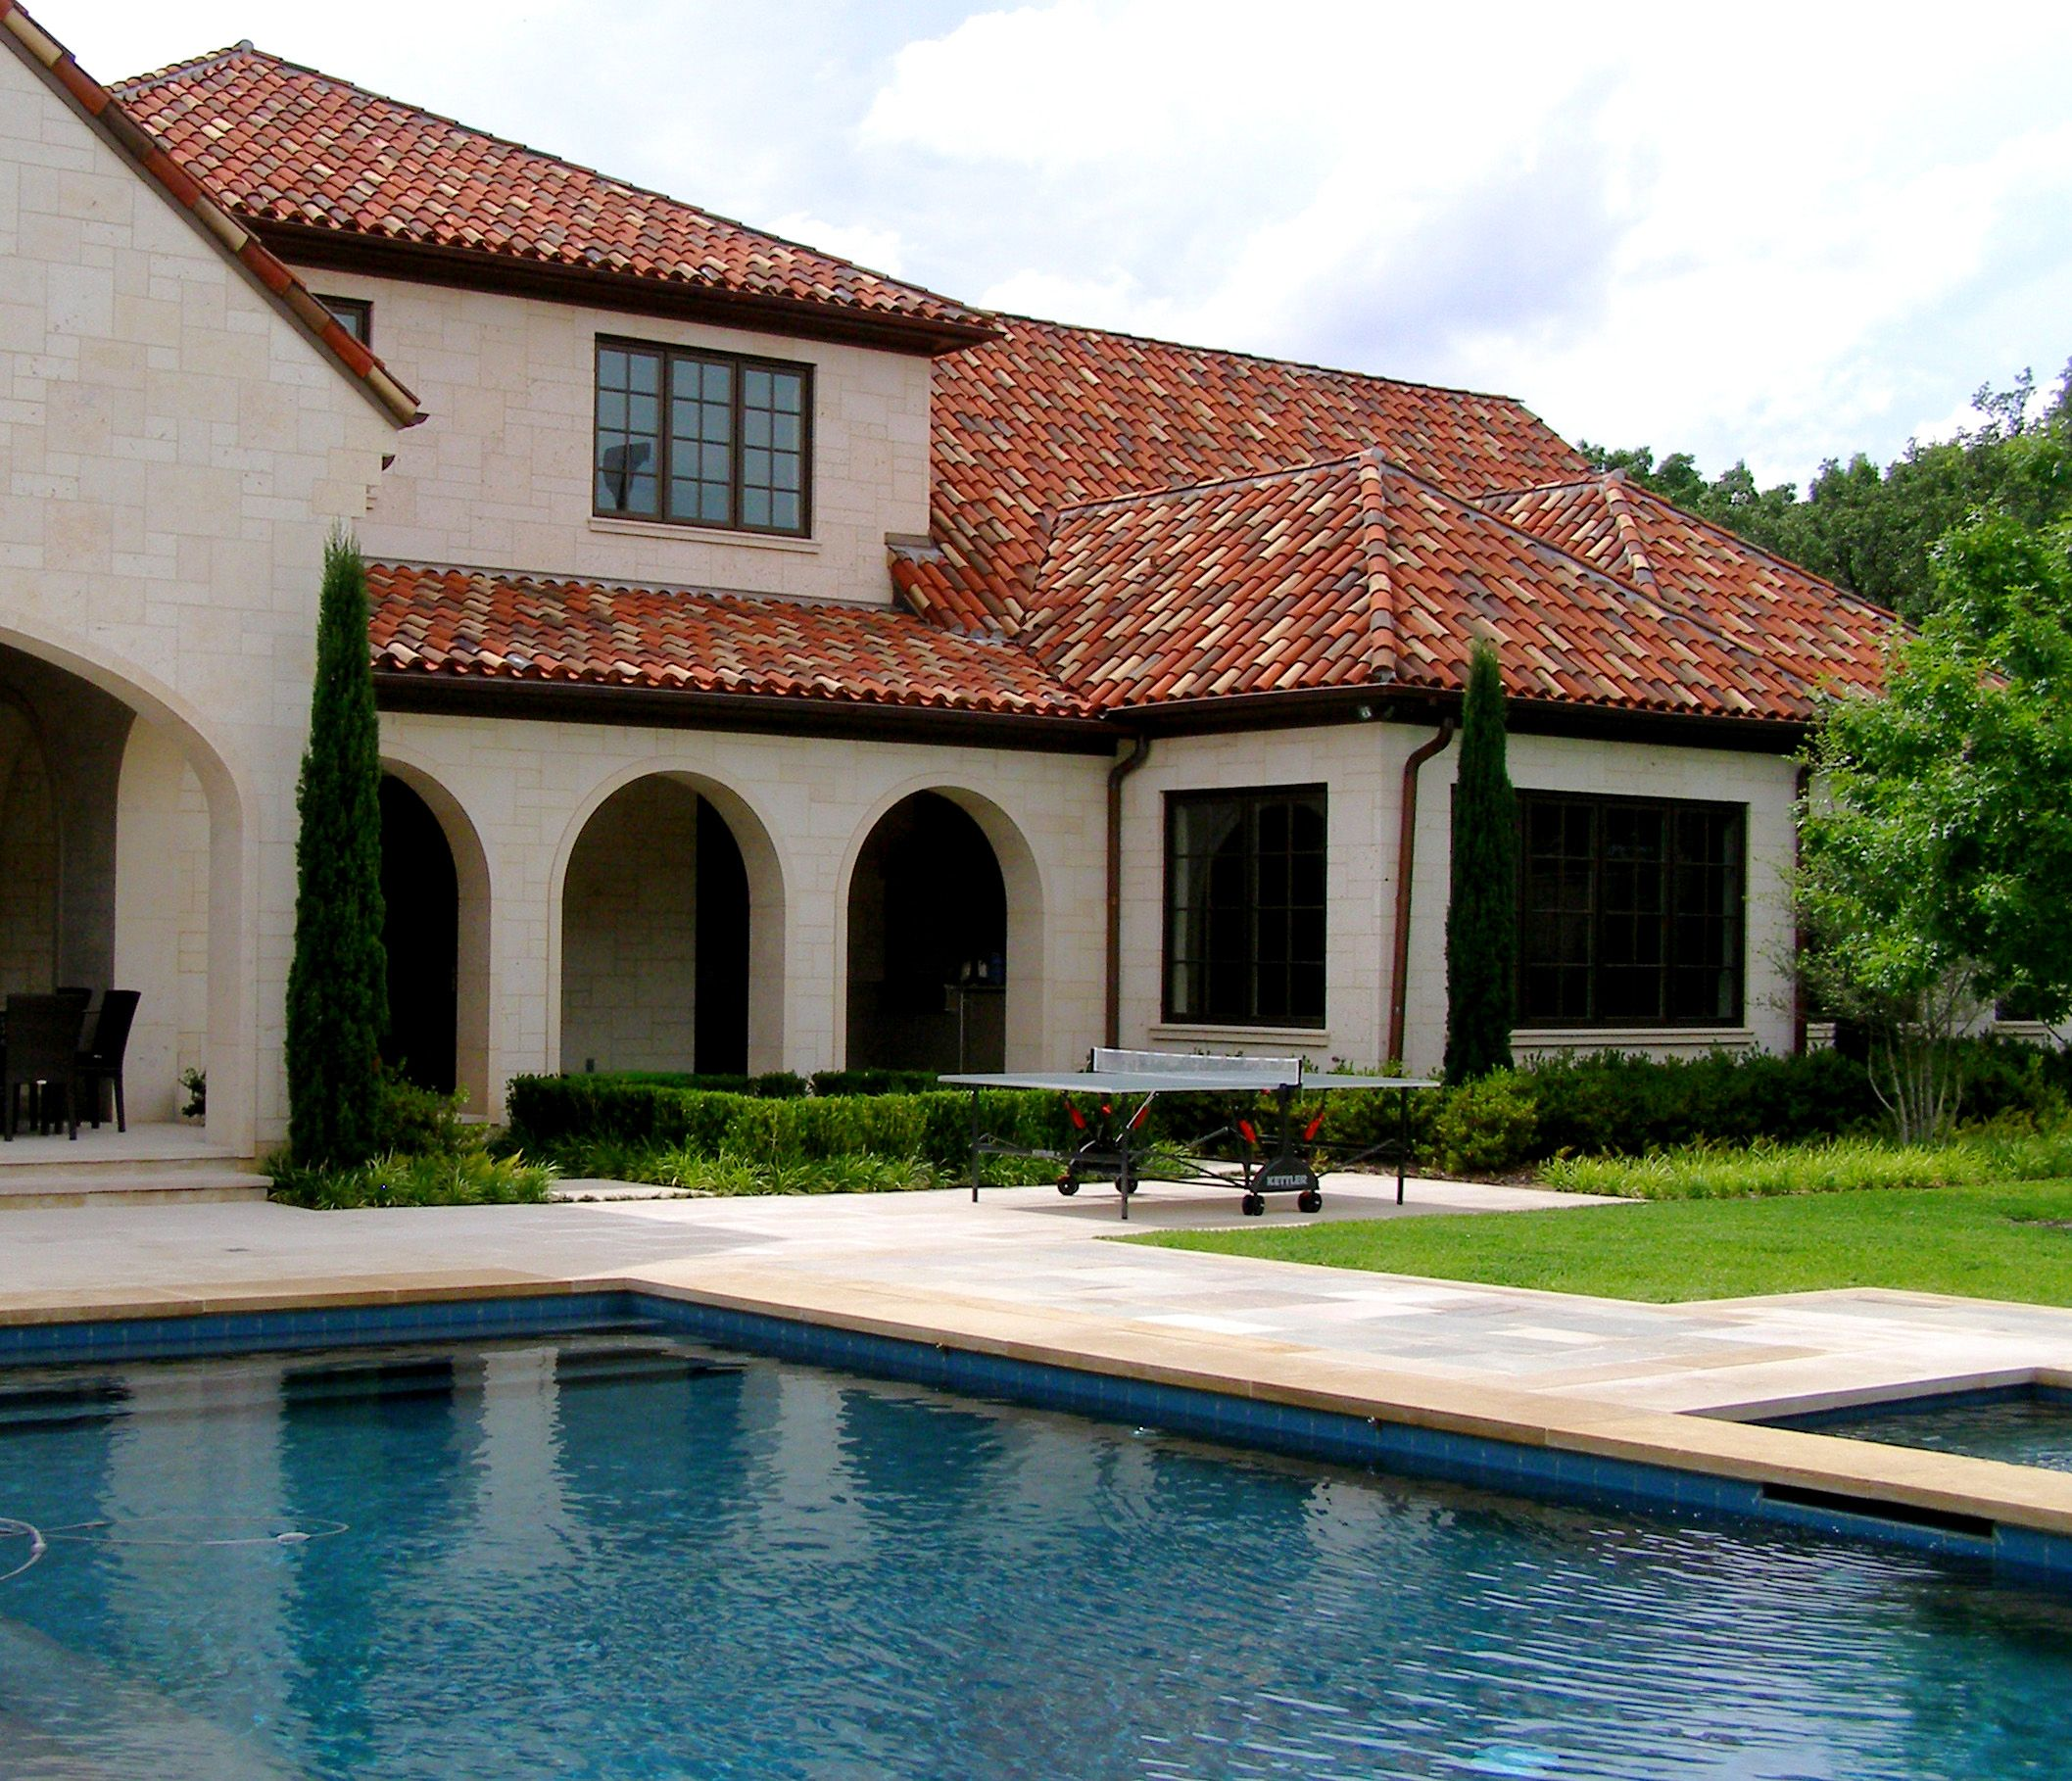 Backyard Exterior Of A Italian Mediterranean Villa In Dallas Tx With Multi Colored Terra Cotta